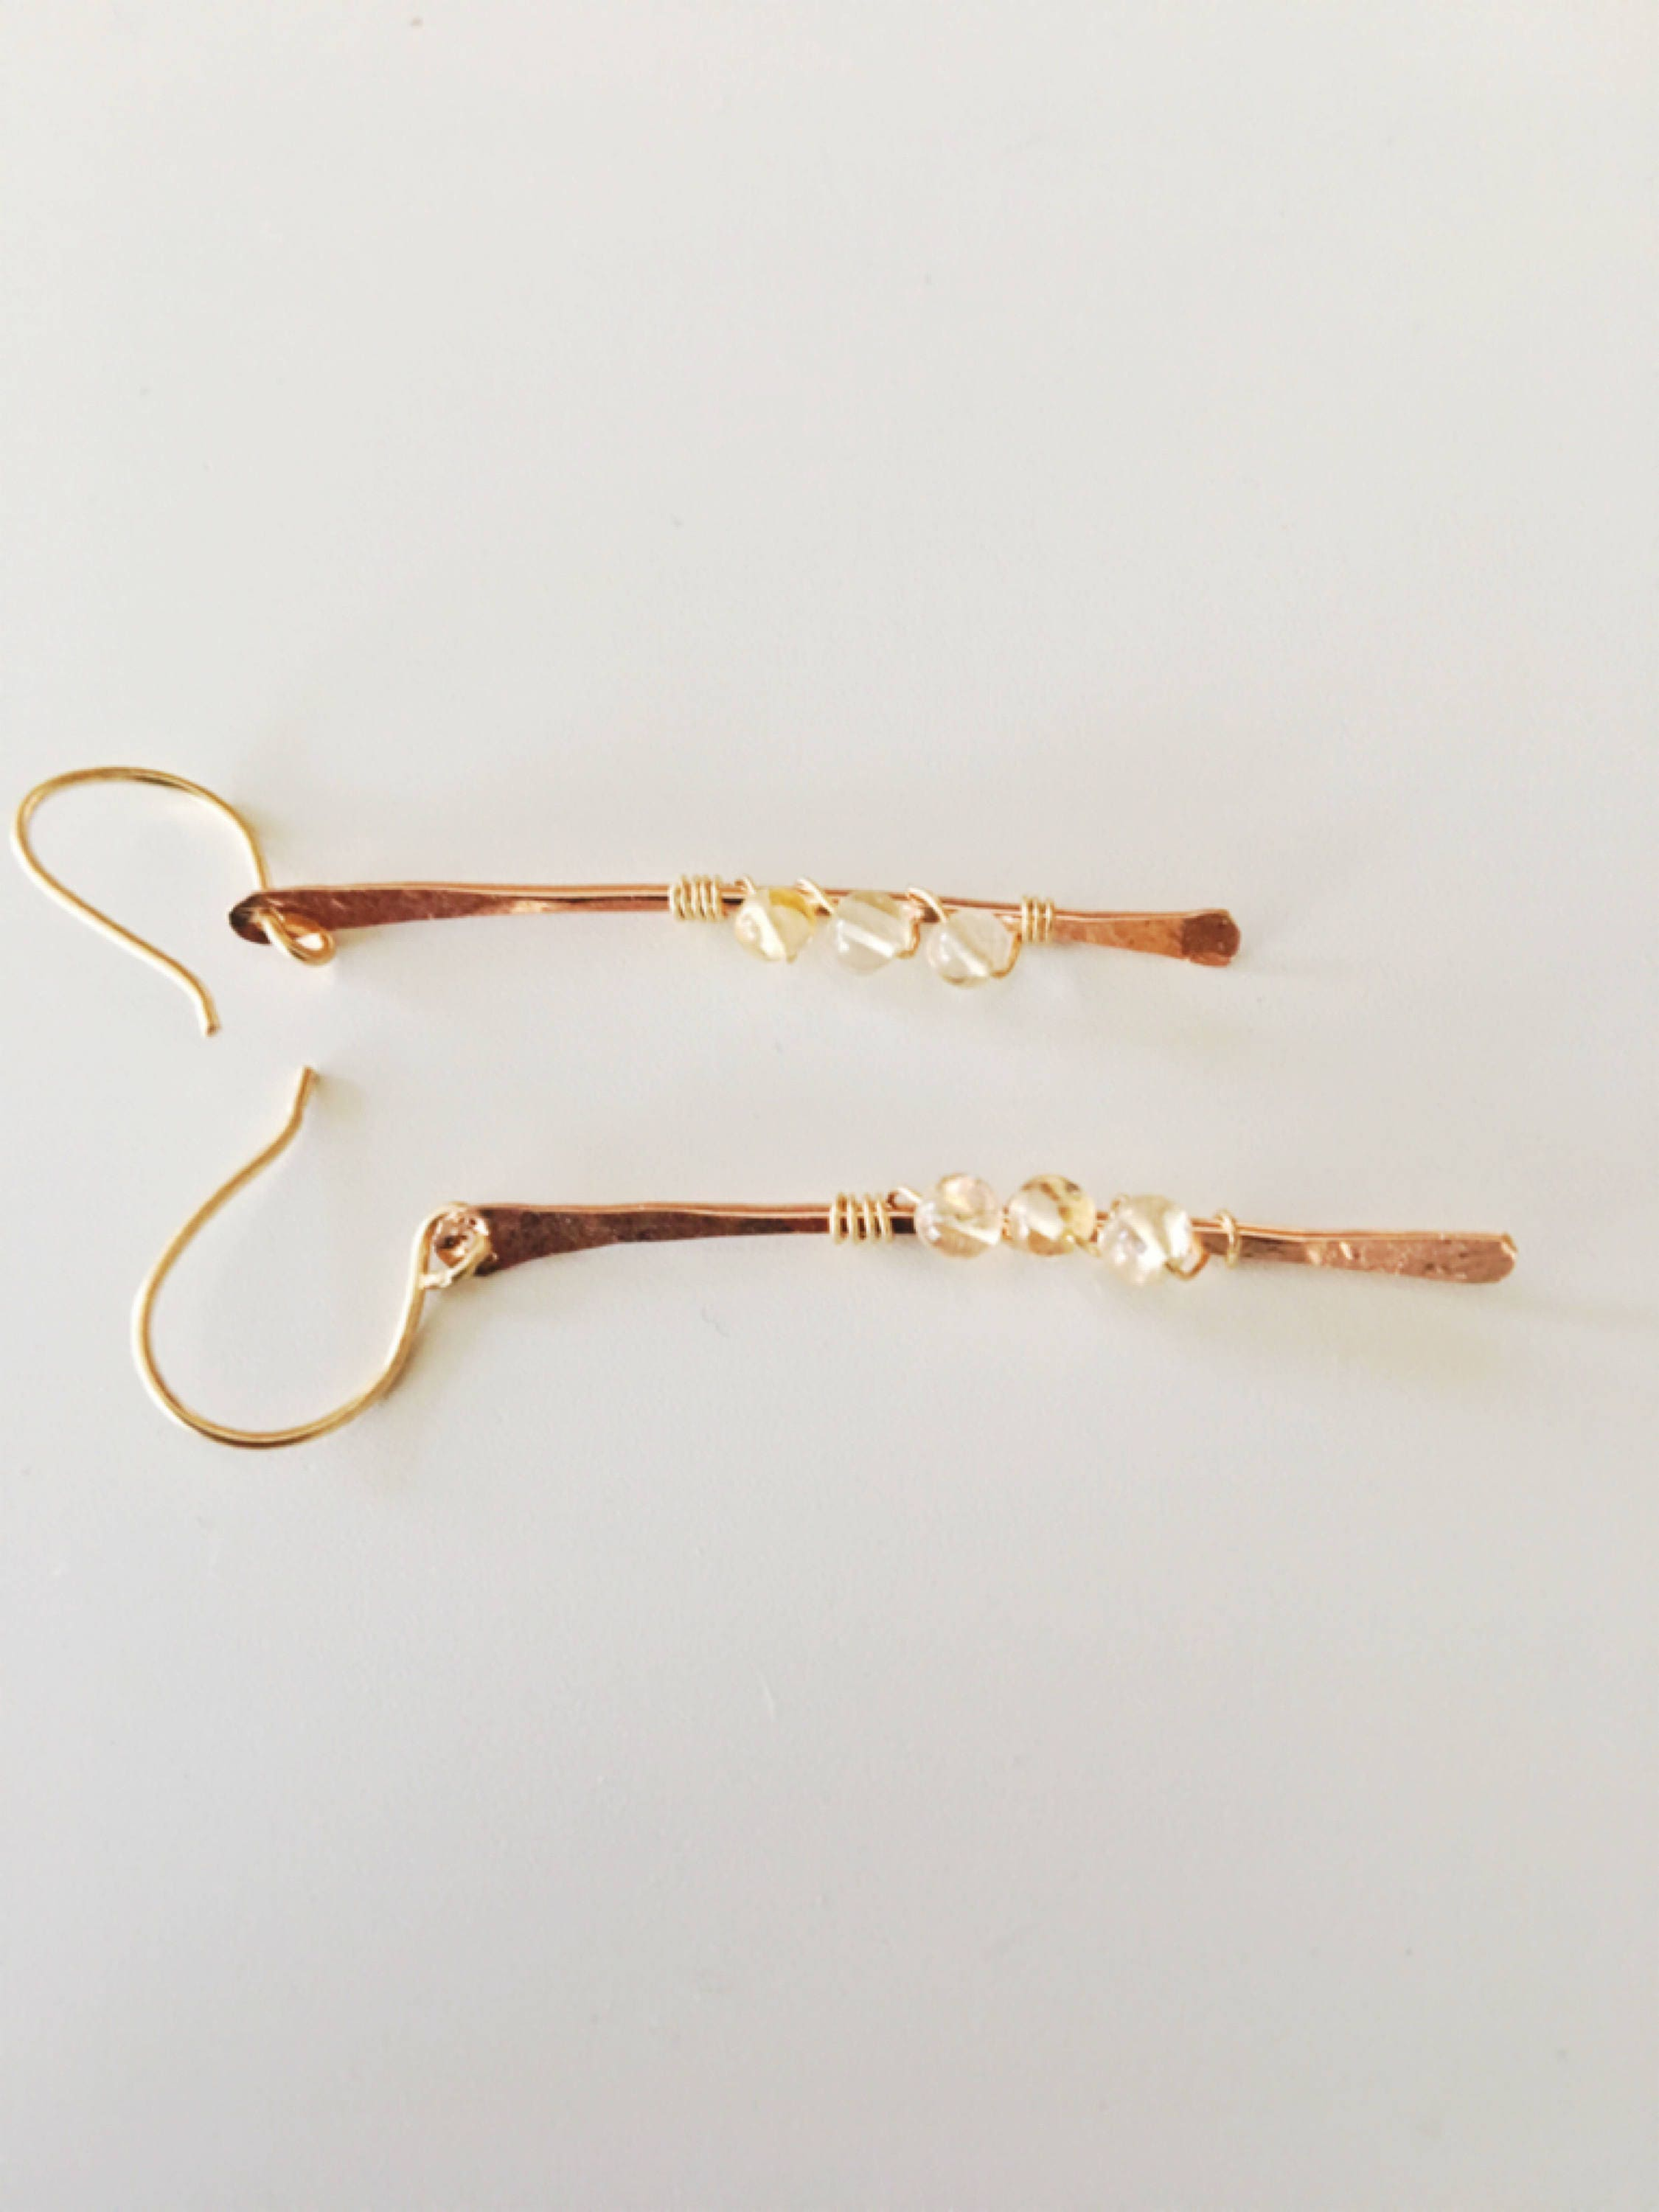 The Nai'a Earrings// Rose Gold Stick Earrings // rose gold citrine earrings// bridal jewelry// bridesmaids jewelry// wedding season//